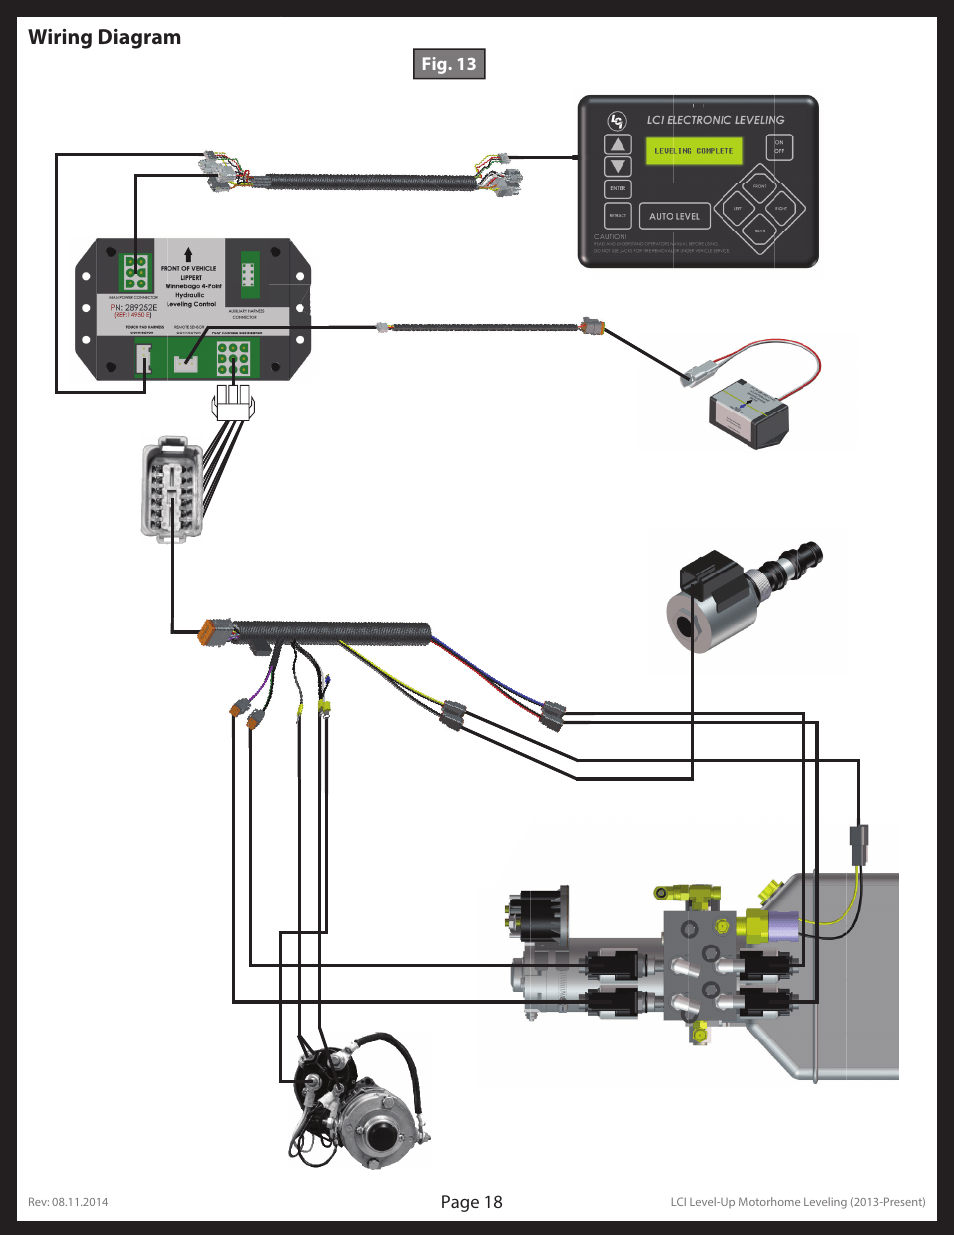 dimmer switch wiring diagram 1997 jeep